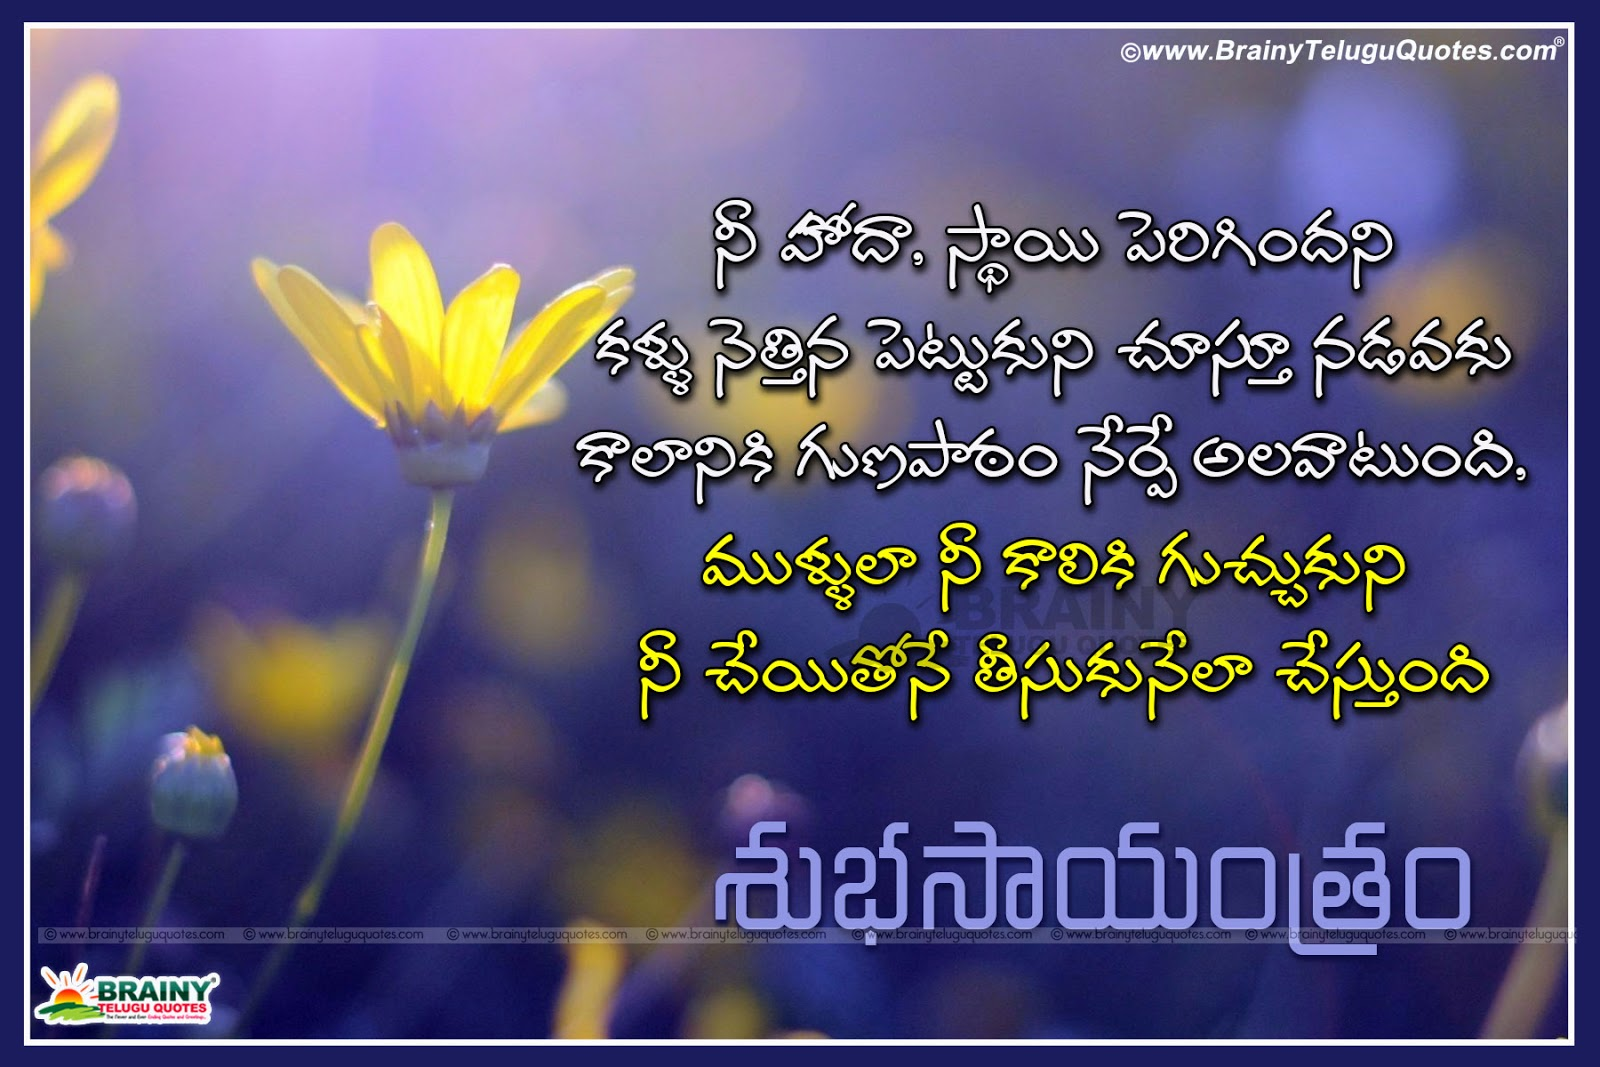 Telugu Inspirational Good Evening Quotes With Flowers Hd Wallpapers